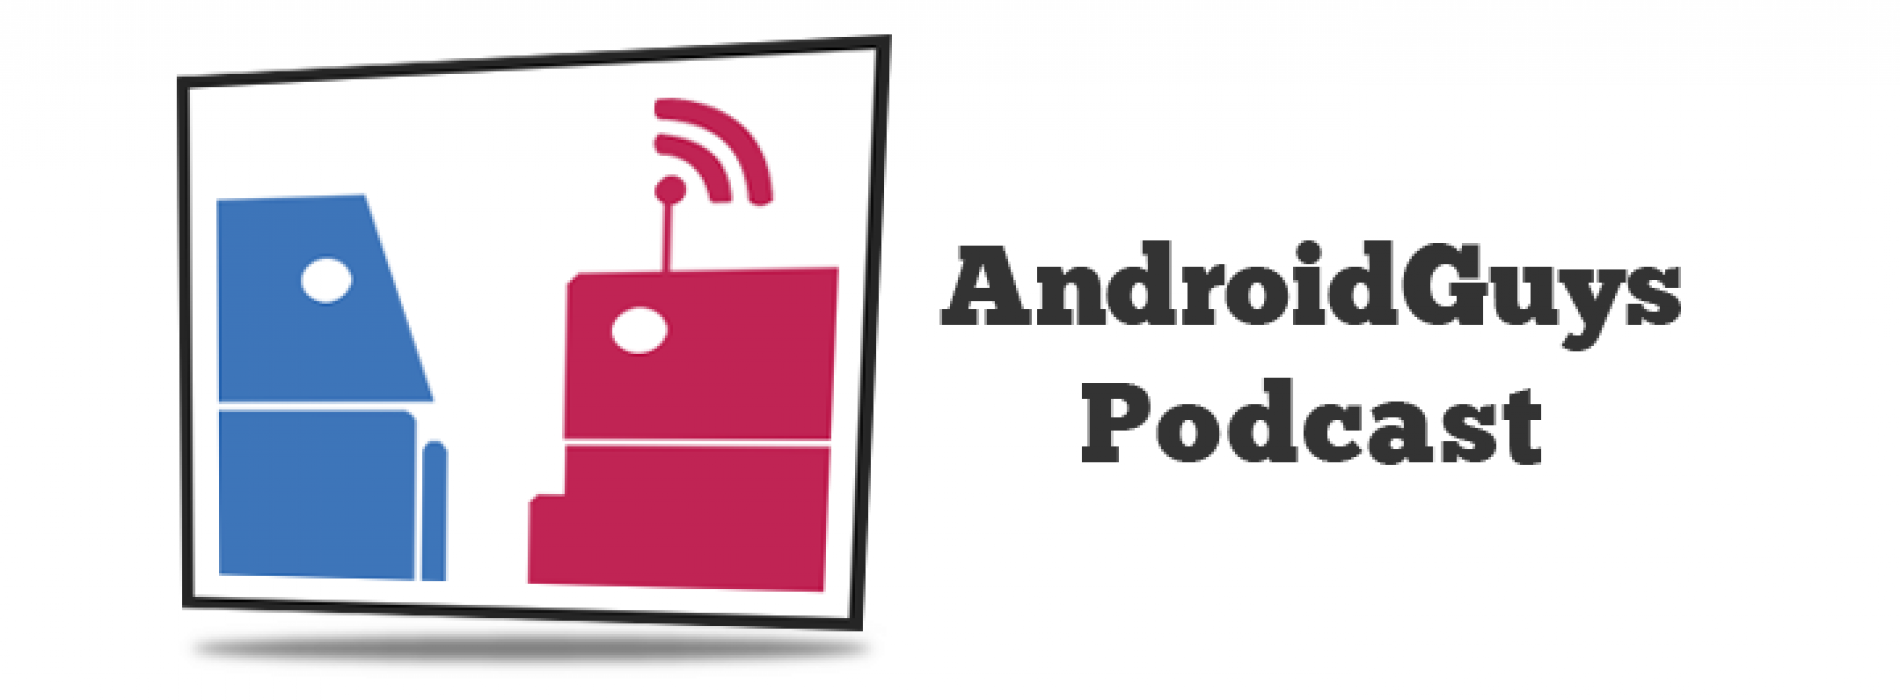 Listen to AndroidGuys Podcast #131 'Gobble Gobble Google'